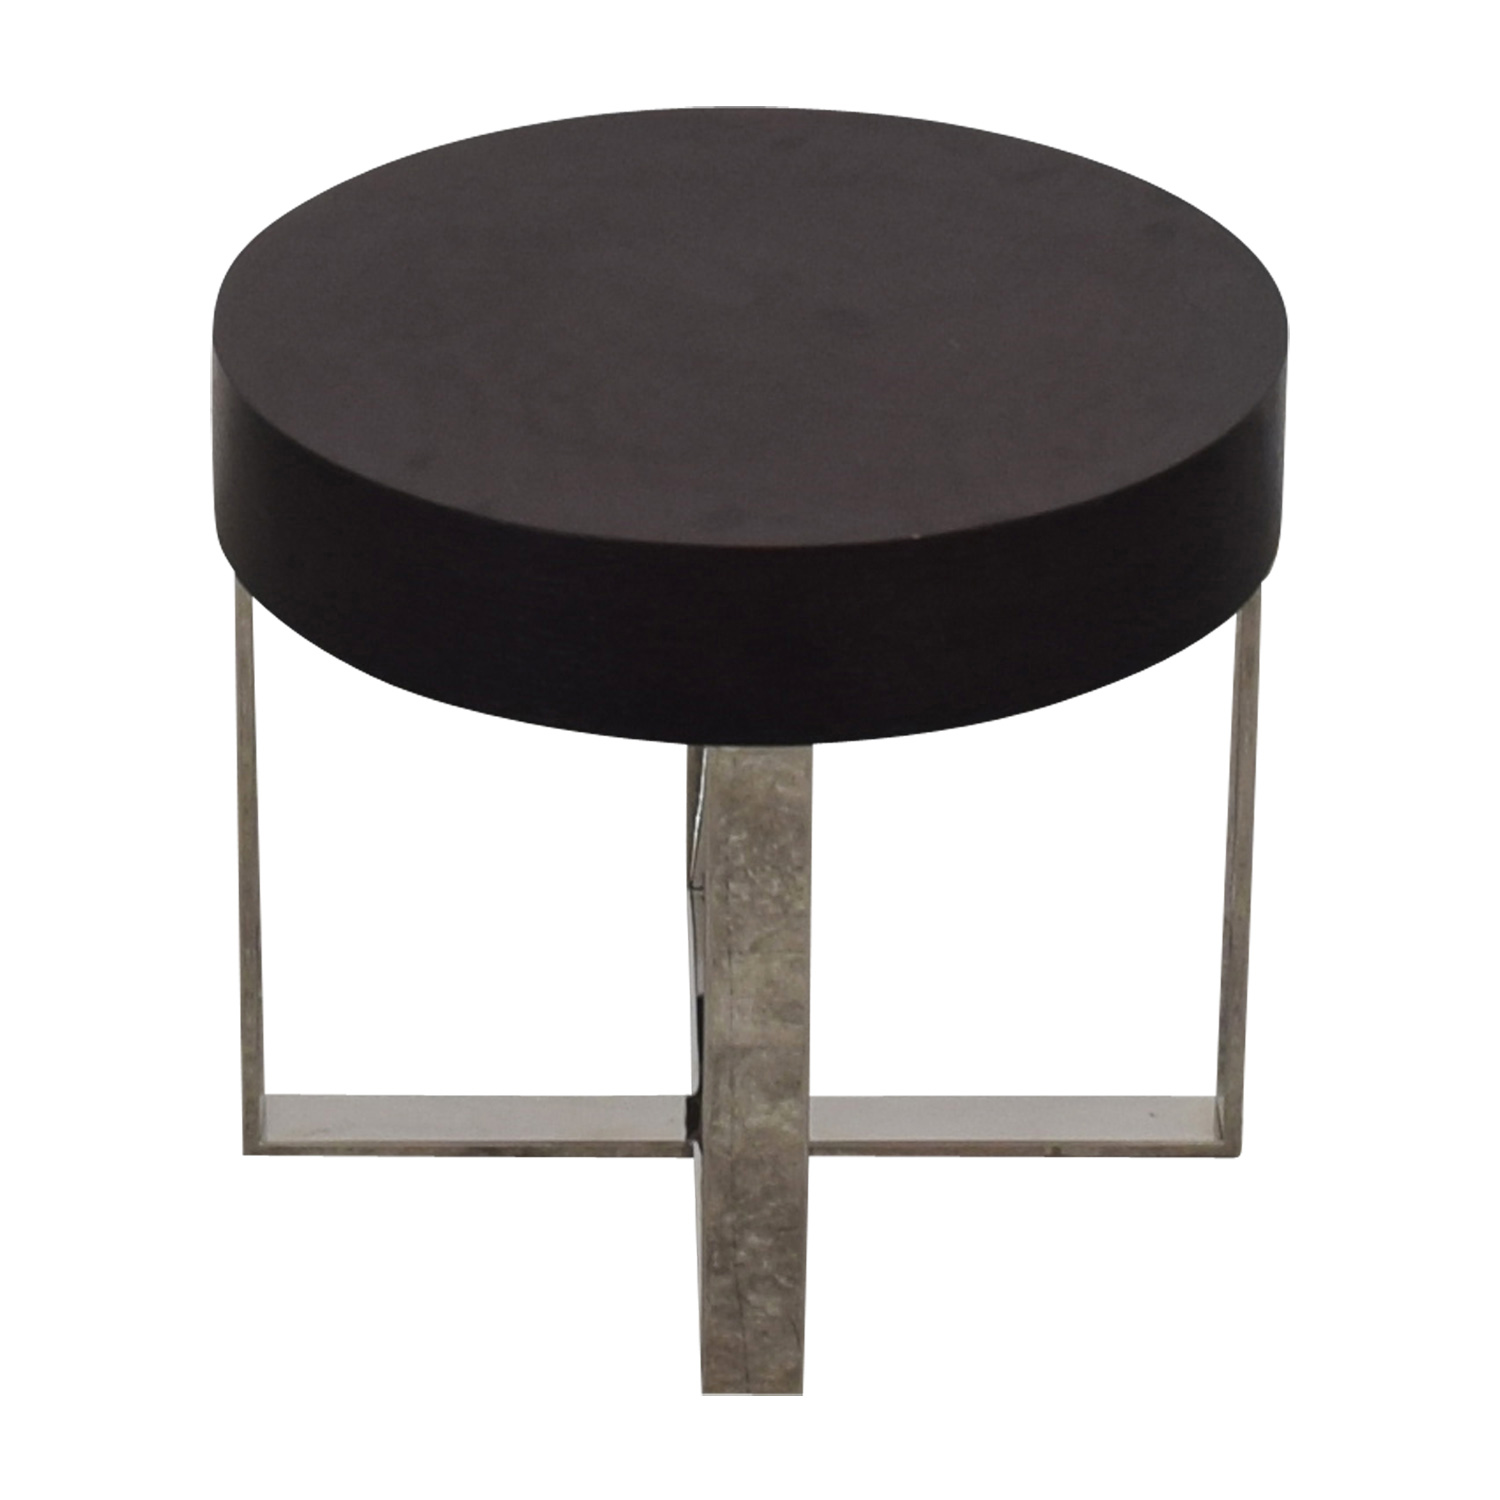 Modenature Modenature Round Side Table Sofas